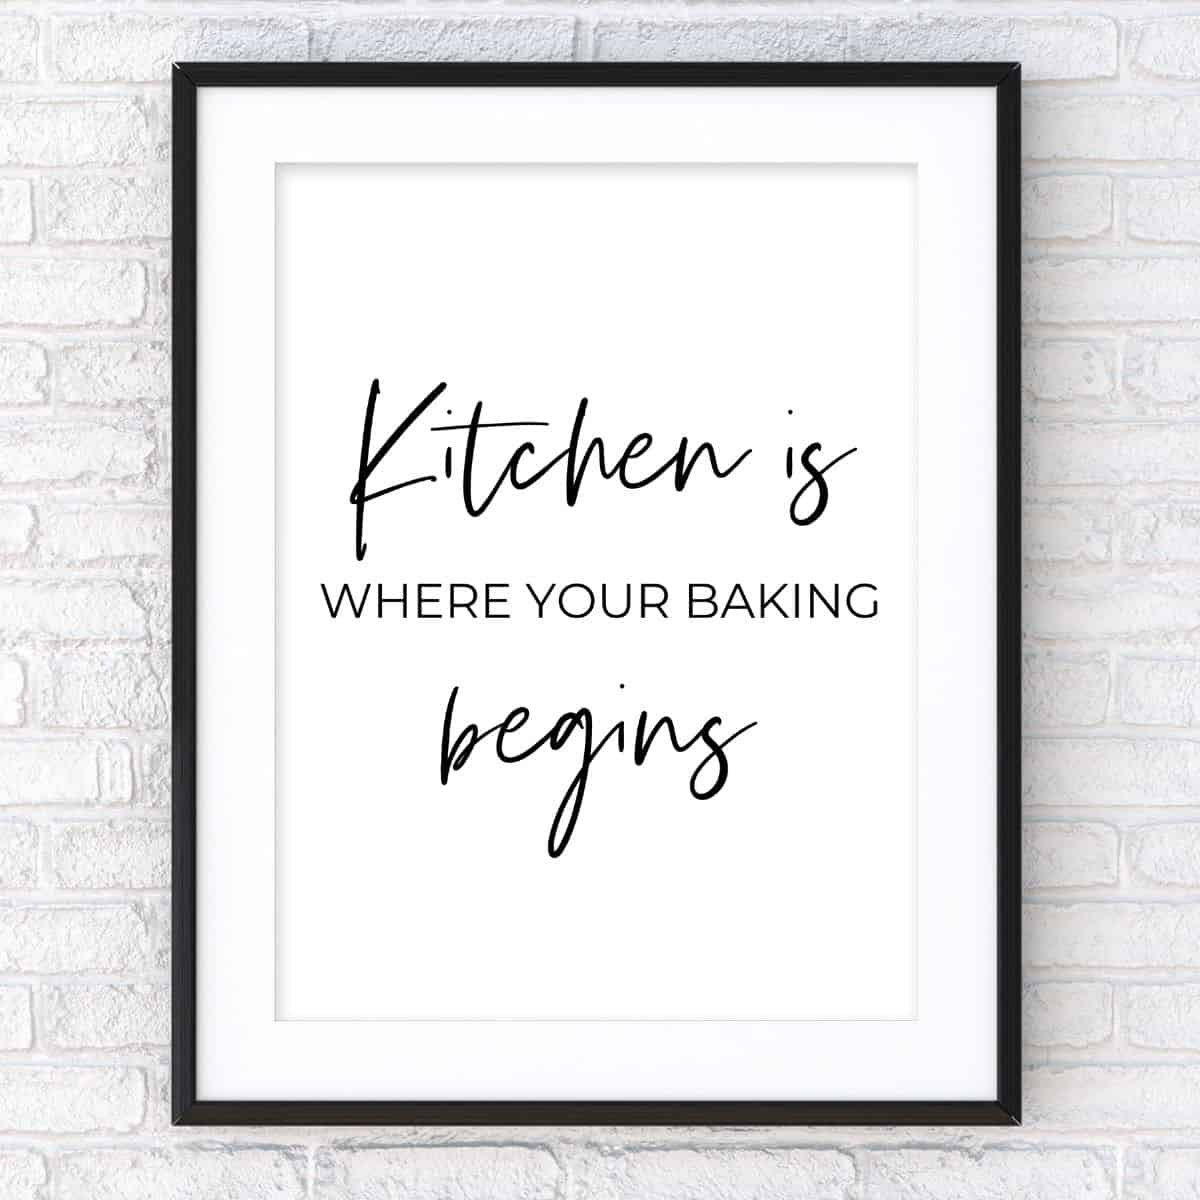 Black frame on the brick wall with the text: Kitchen is where your baking begins